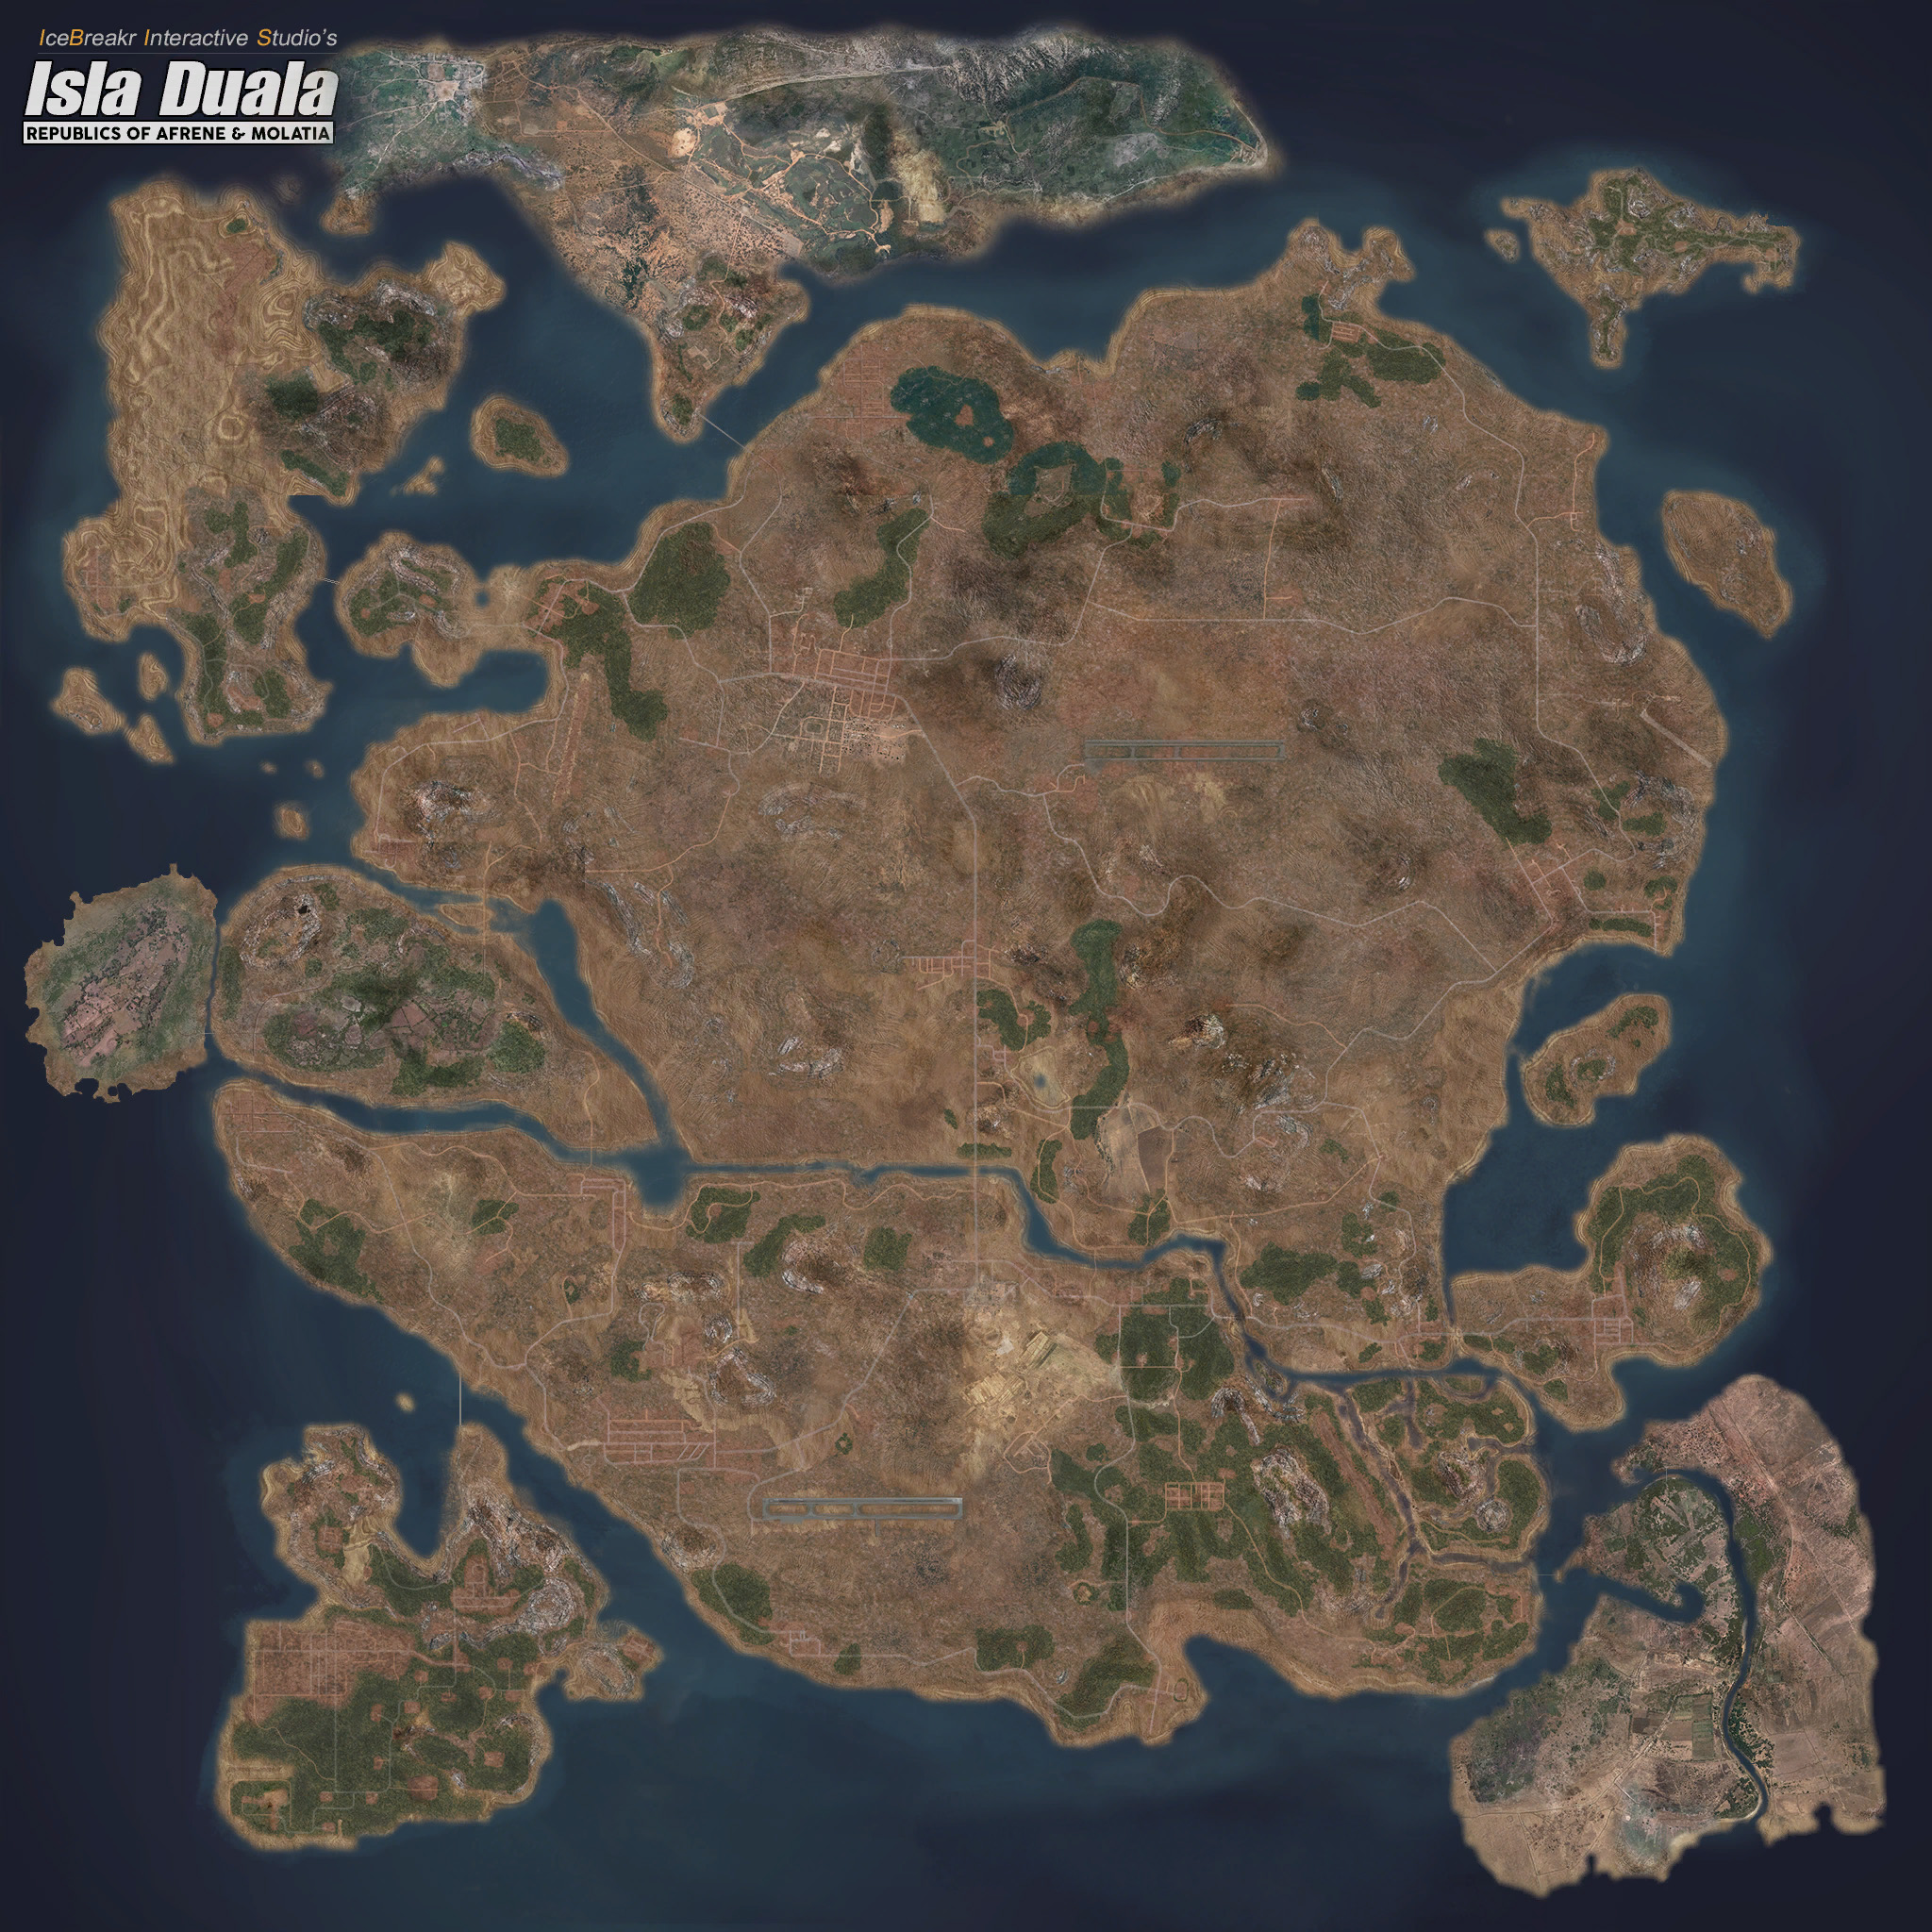 Arma 3 Africa Map Steam Workshop::Isla Duala